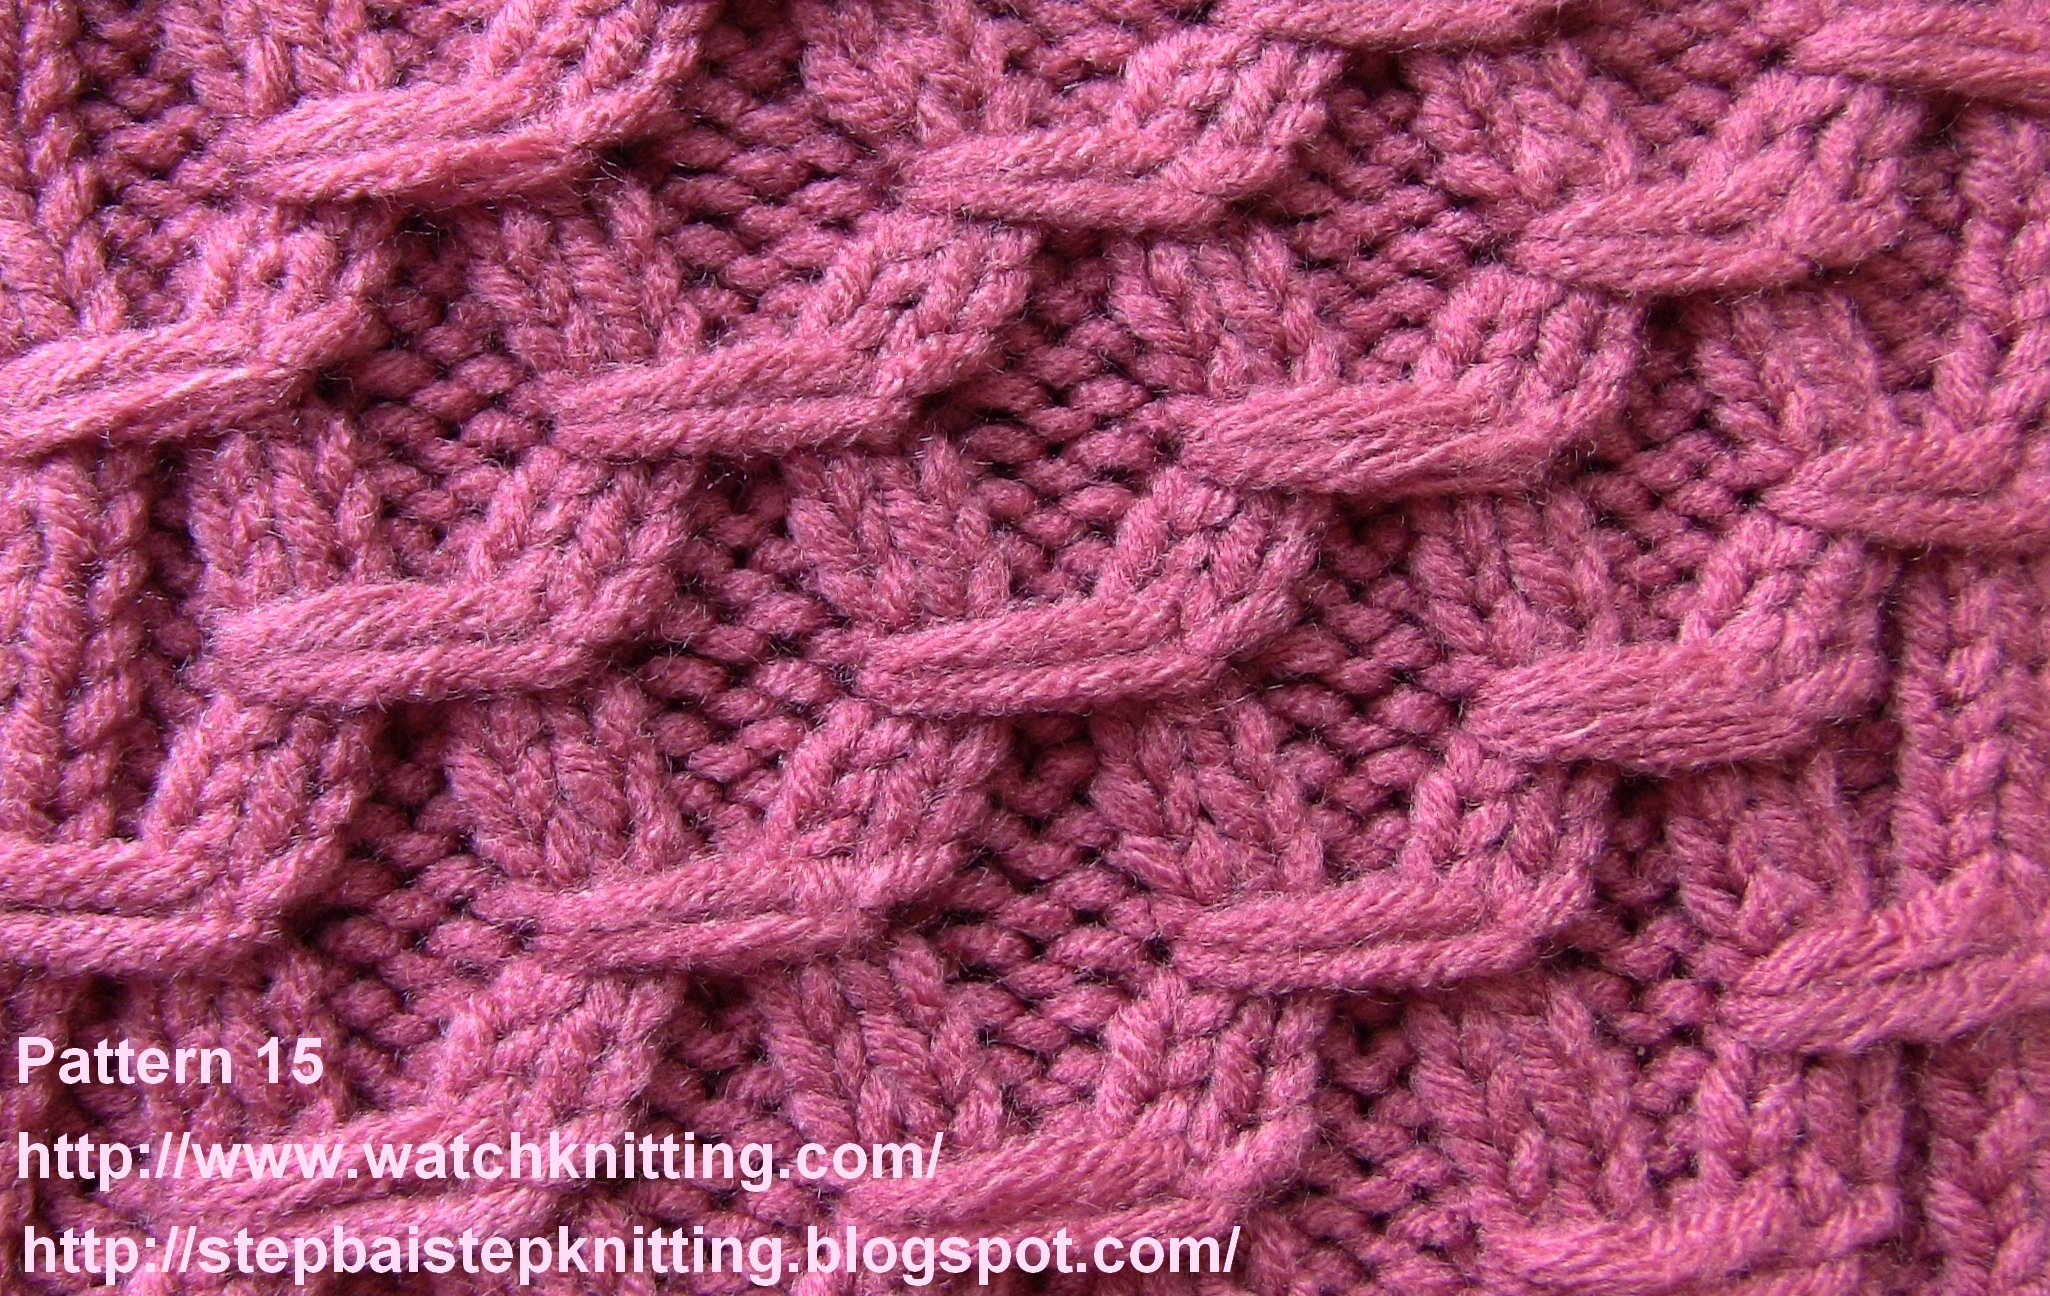 Baby Socks Knitting Patterns : Embossed Knitting stitches Watch Knitting